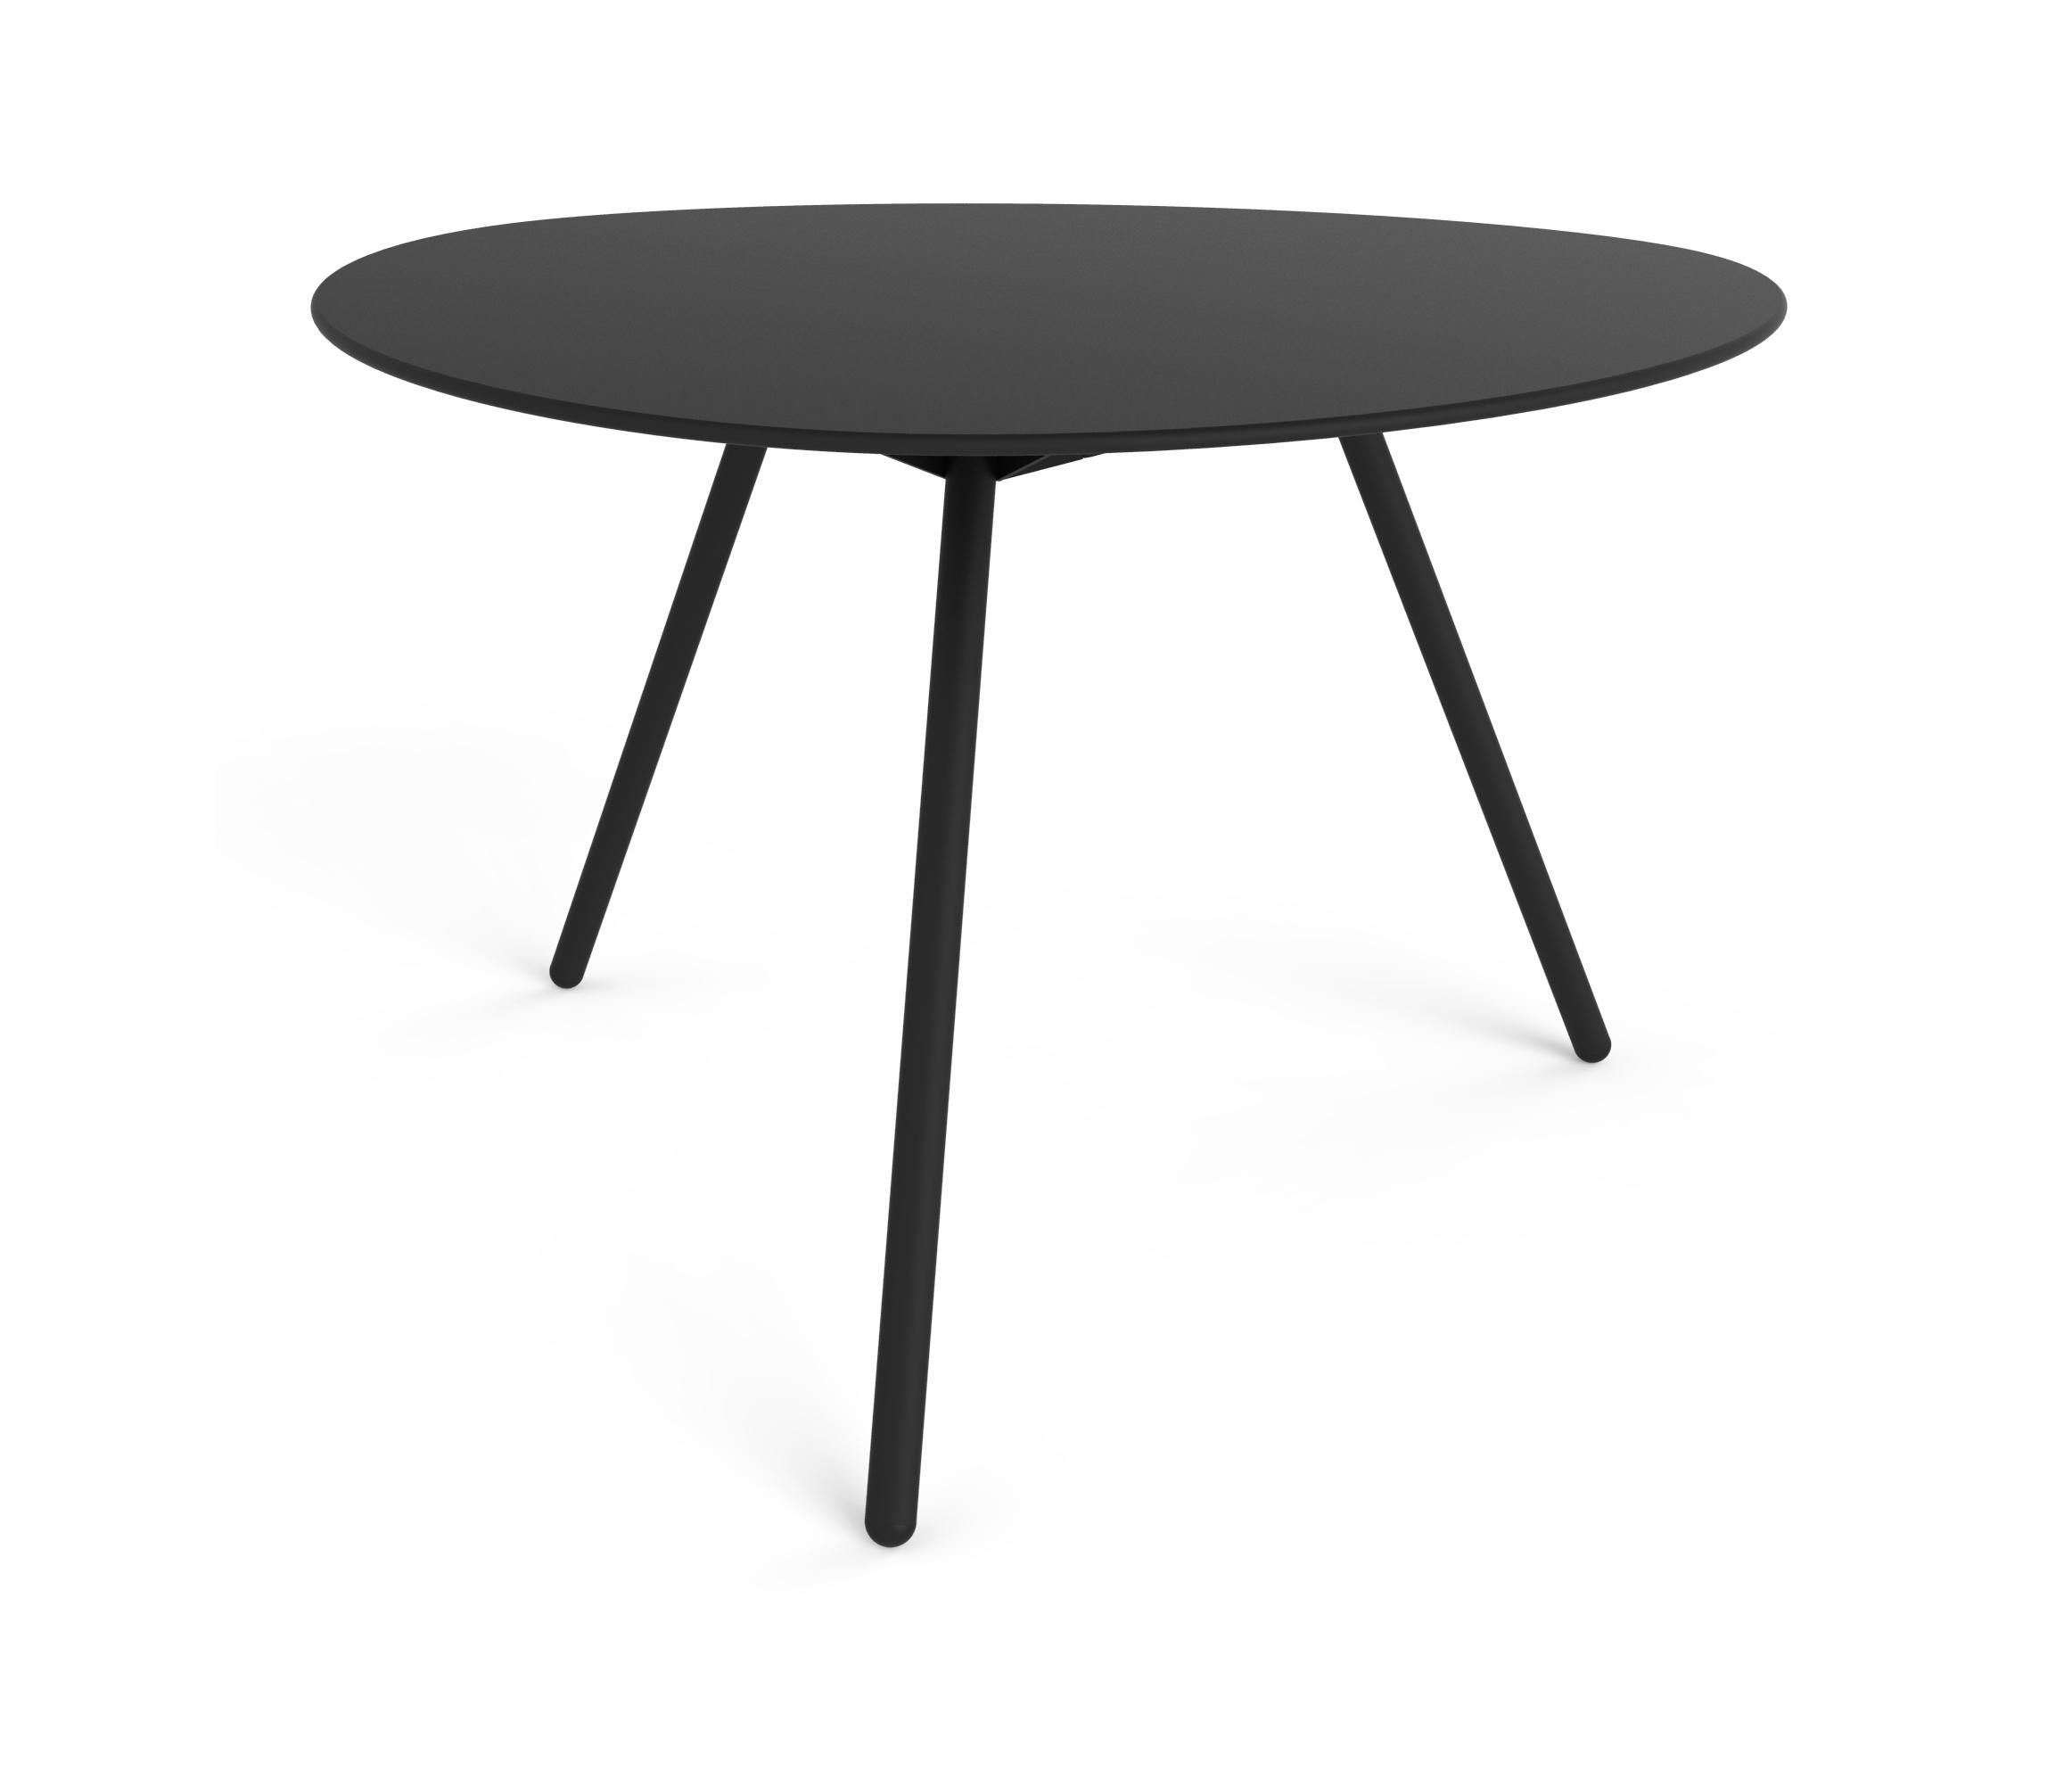 Dine A Lowha D120 H75 Dinner Table